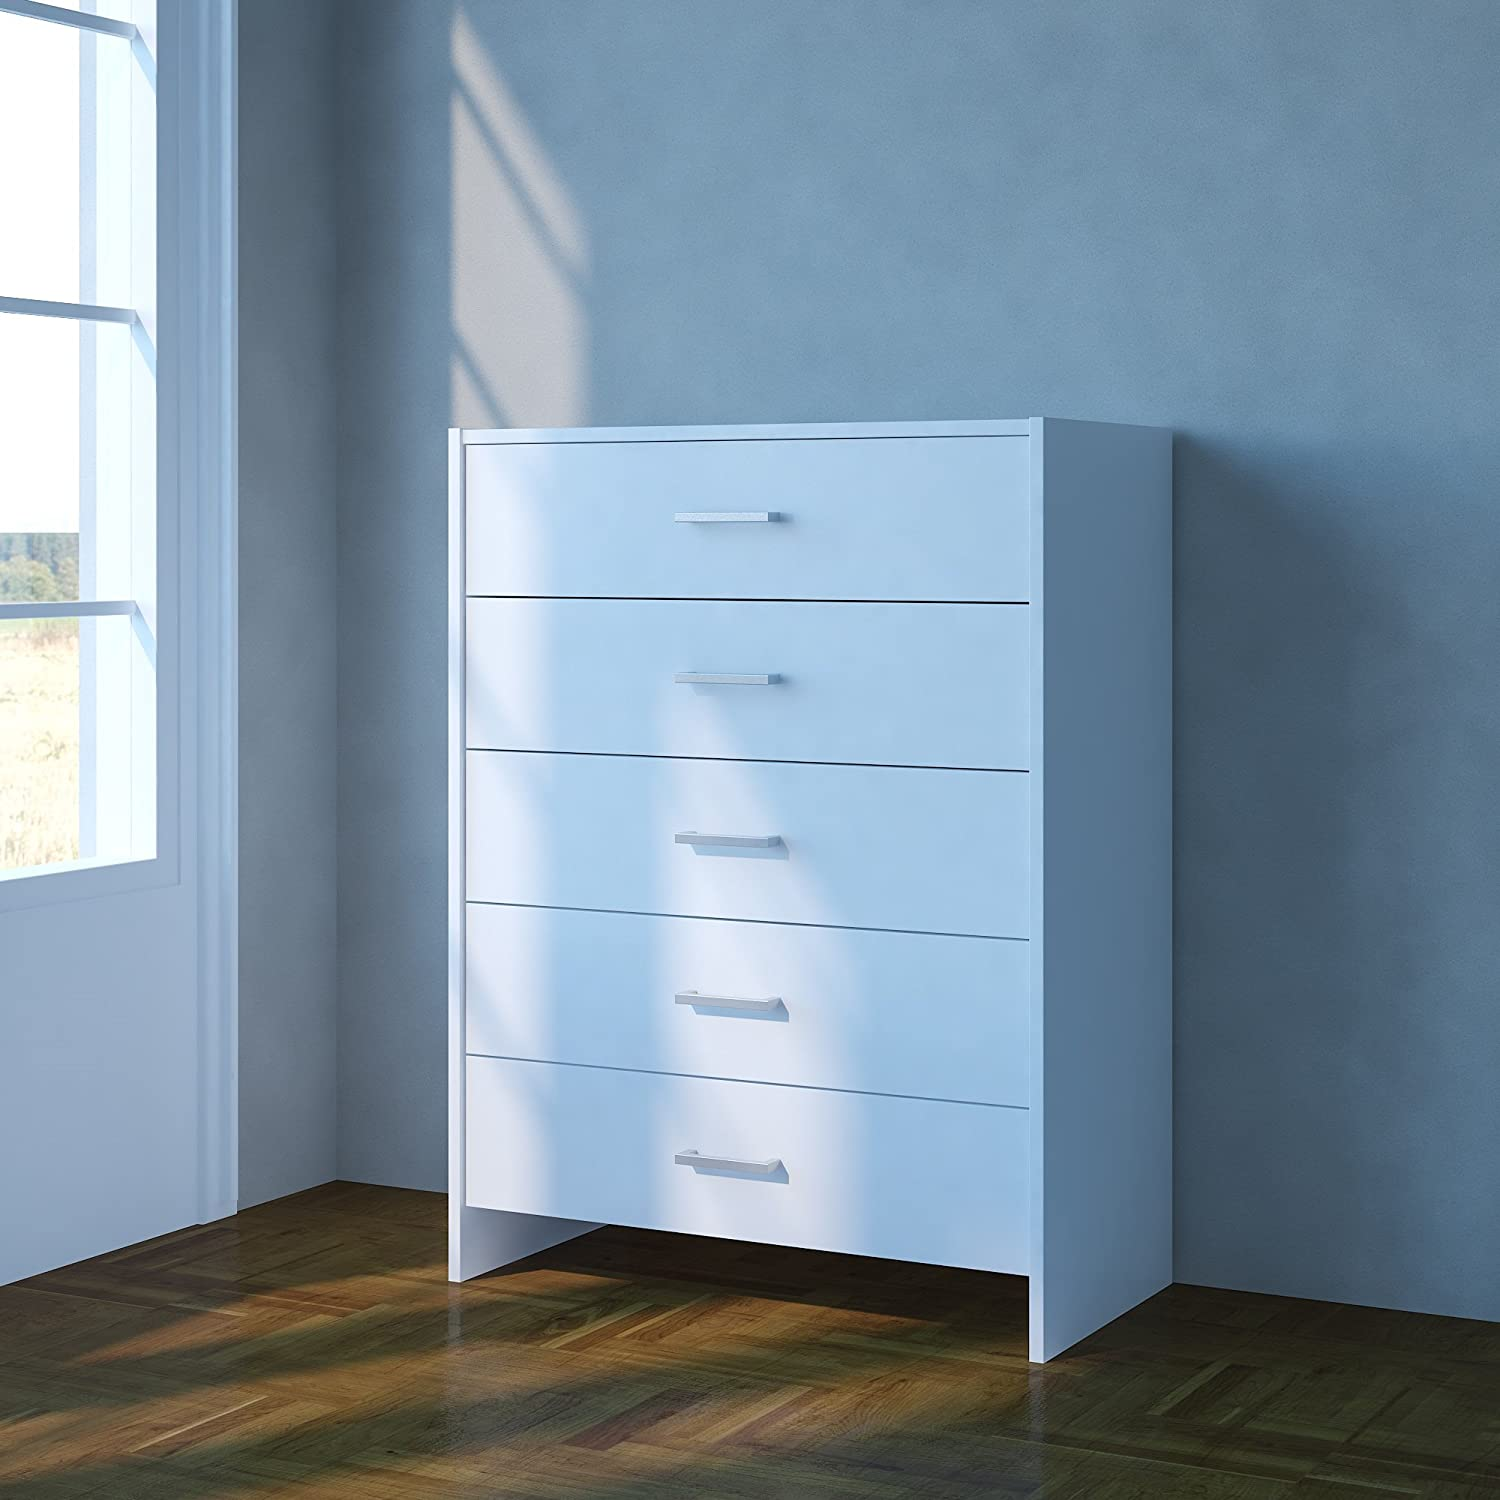 Home source chest of drawers white bedroom furniture 5 drawer silver handles metal runners amazon co uk kitchen home